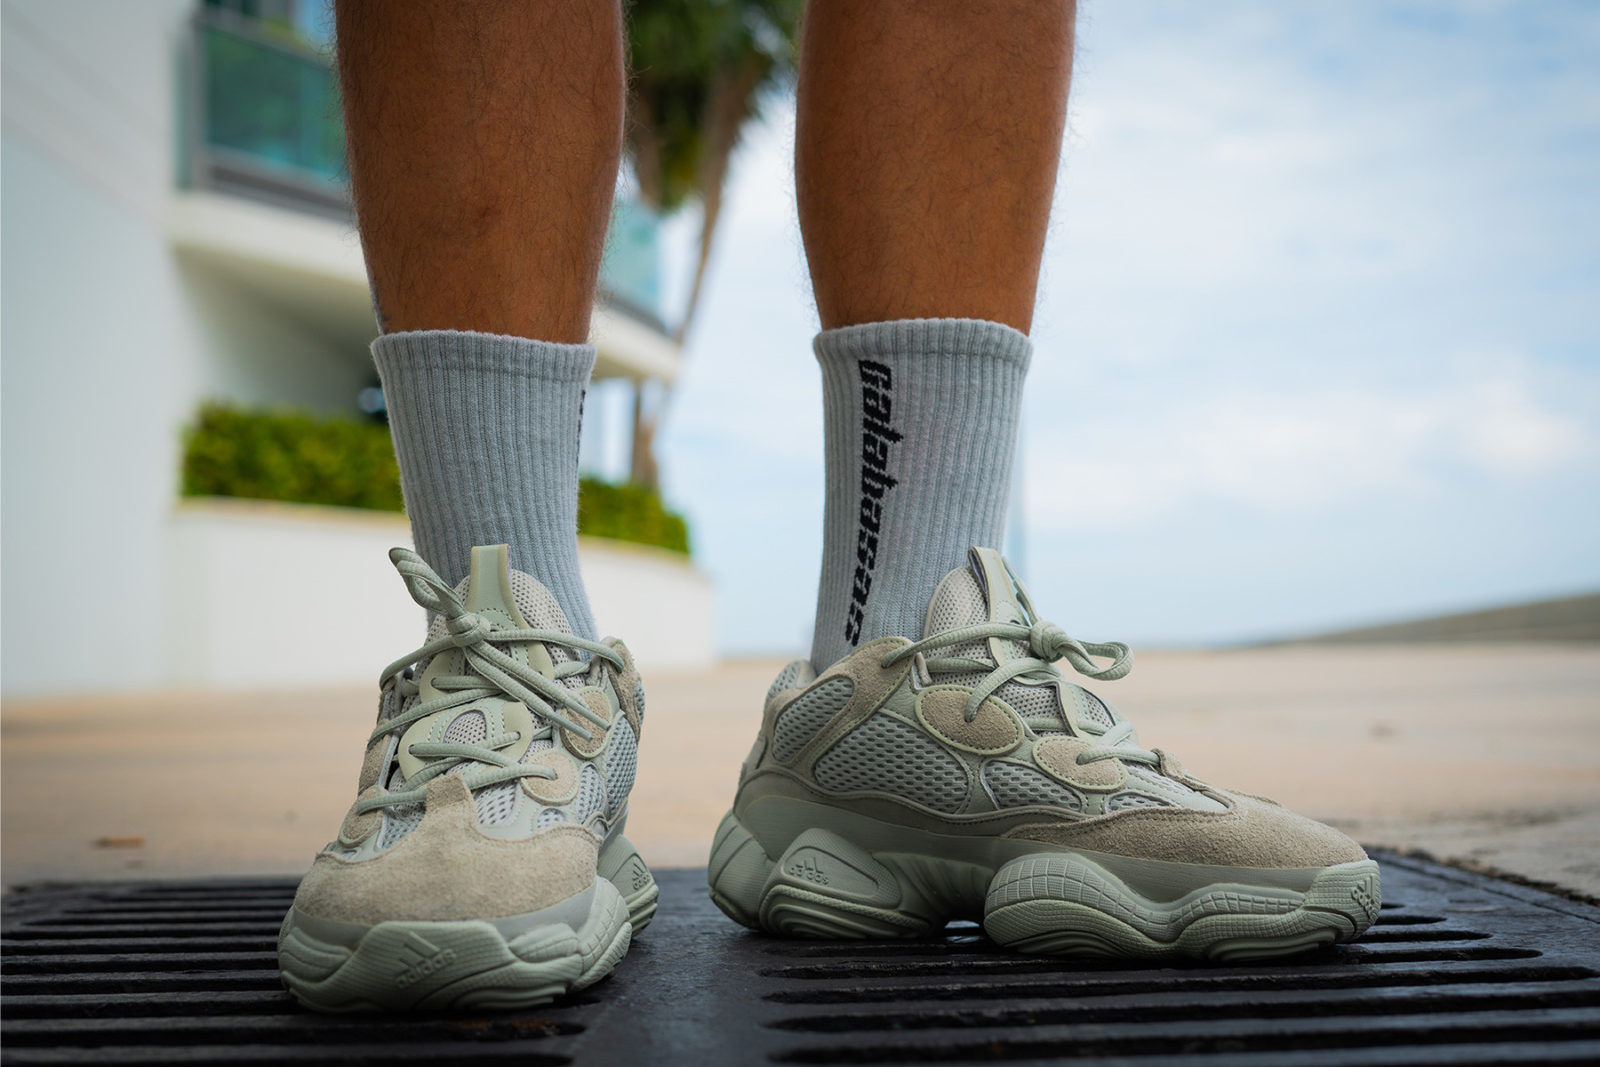 cms cdn.thesolesupplier.co.uk201809https_ 2Fimage2F20182F092Fadidas yeezy 500 salt on foot 2 1600x1067.jpg